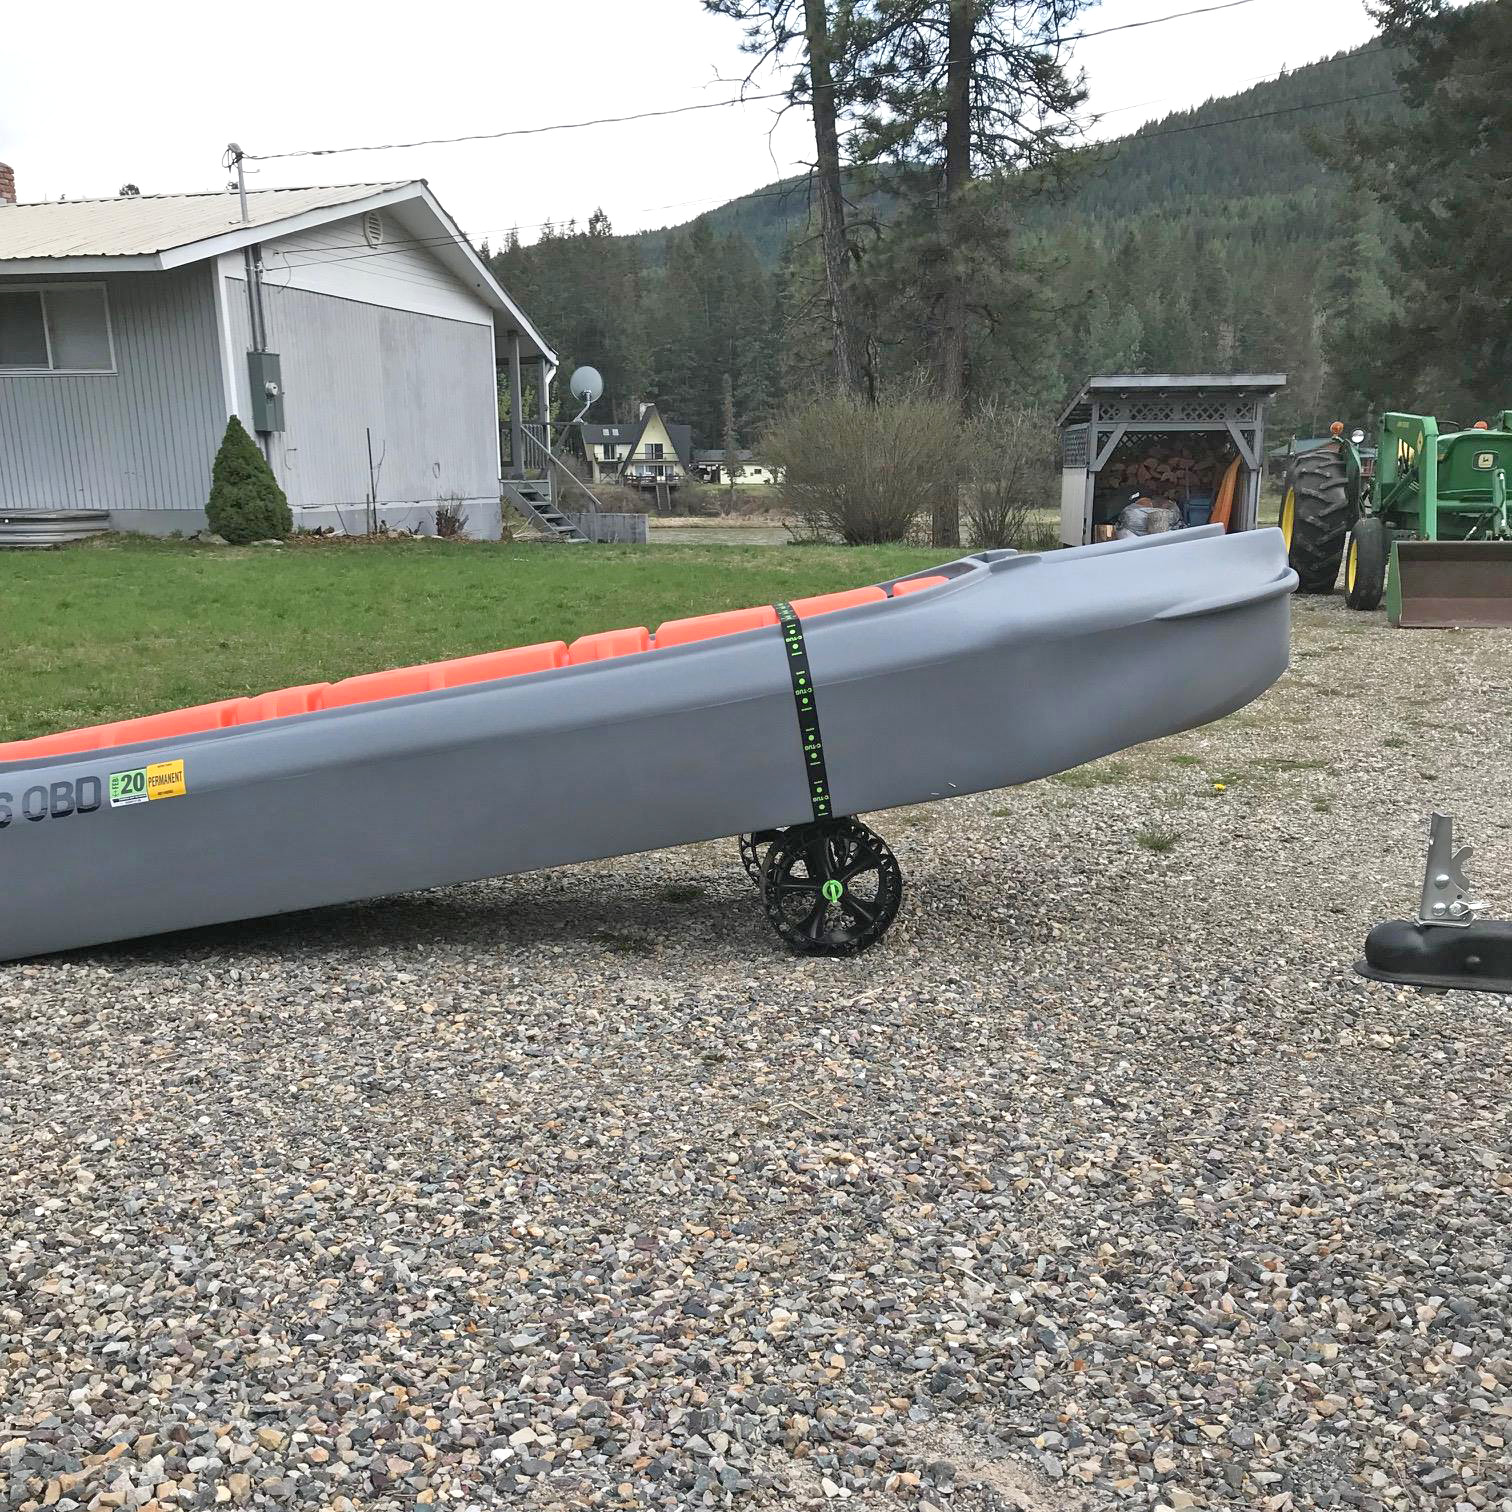 Transportation dolly for Wavewalk S4 kayak